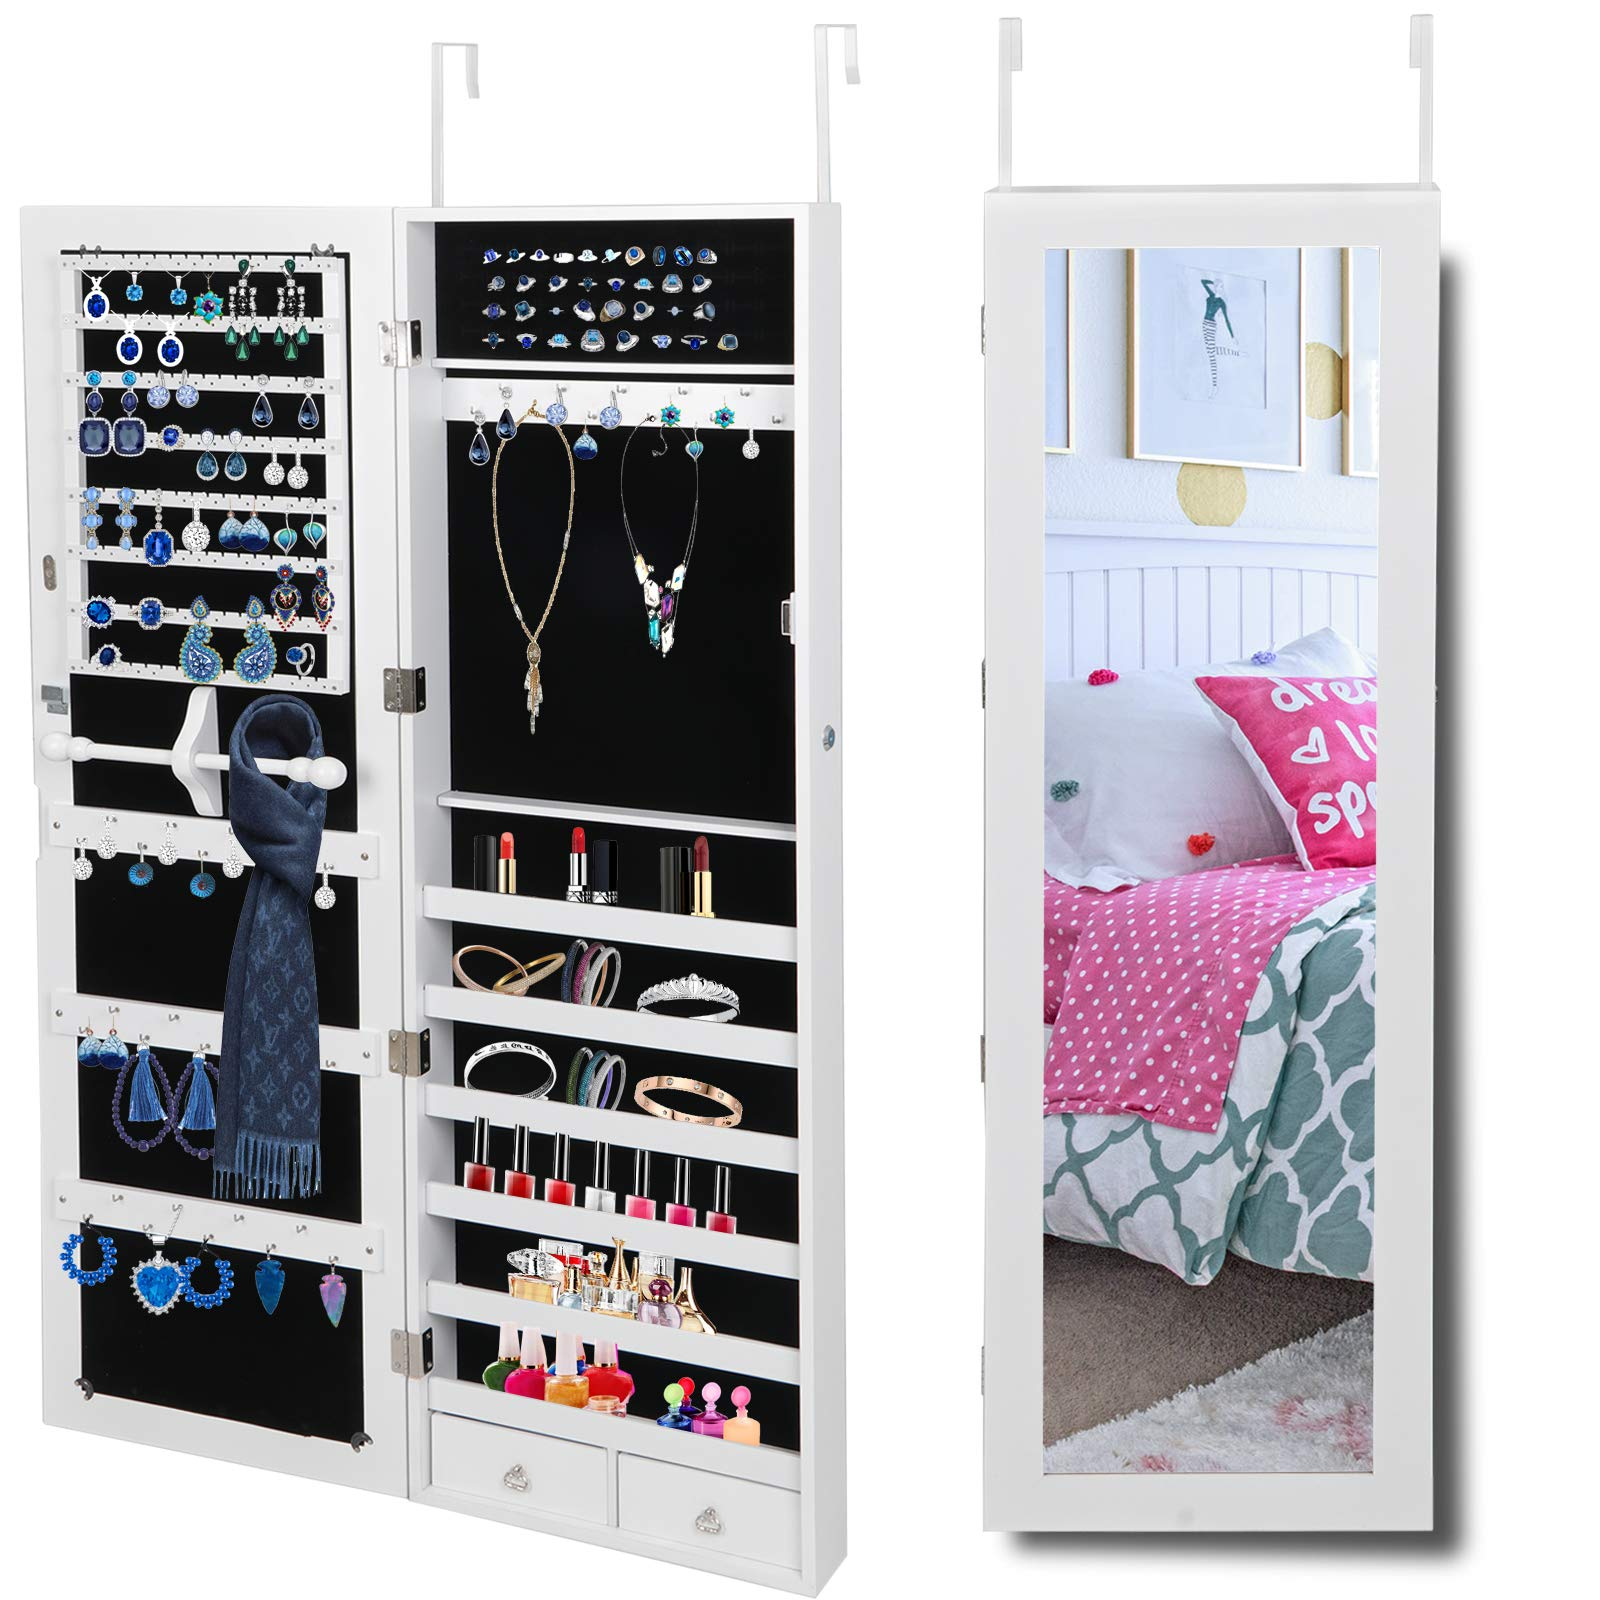 SUPER DEAL Jewelry Armoire Lockable Wall/Door Mounted Jewelry Organizer with Full Length Mirror and Drawers